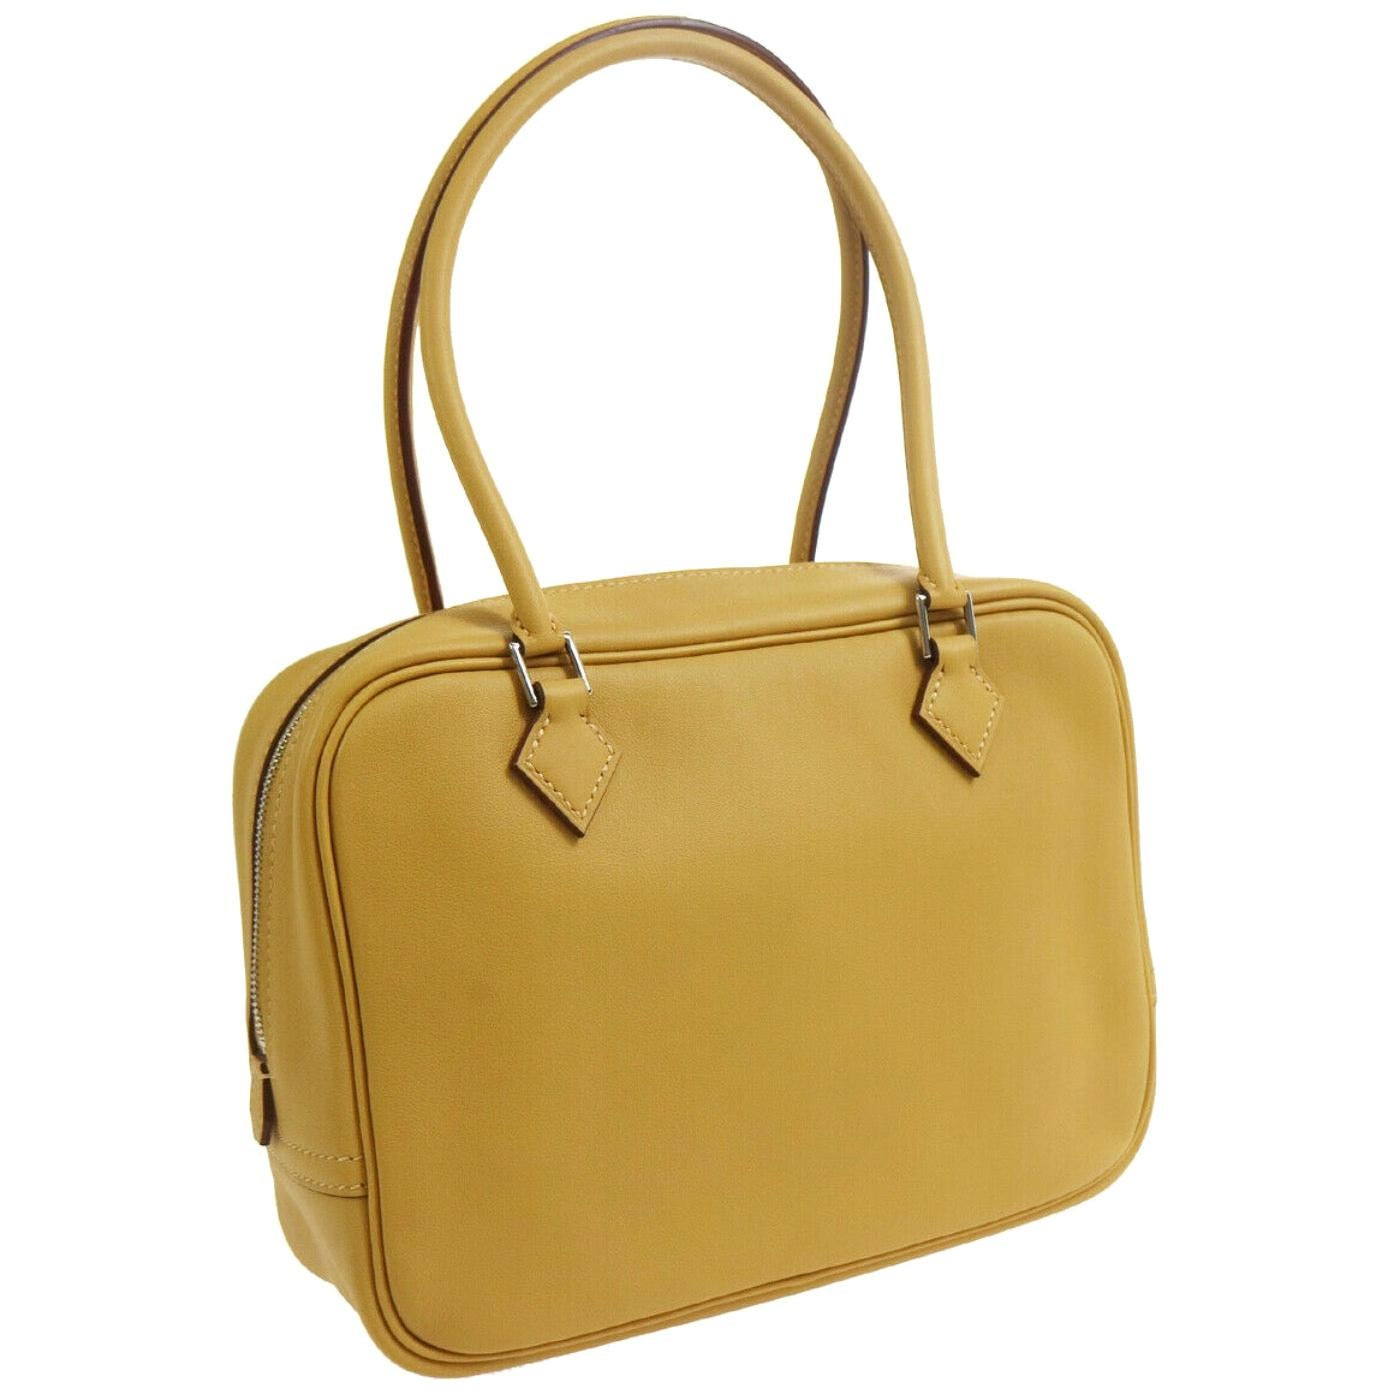 Hermes Yellow Mustard Leather Small Silver Evening Top Handle Satchel Bag